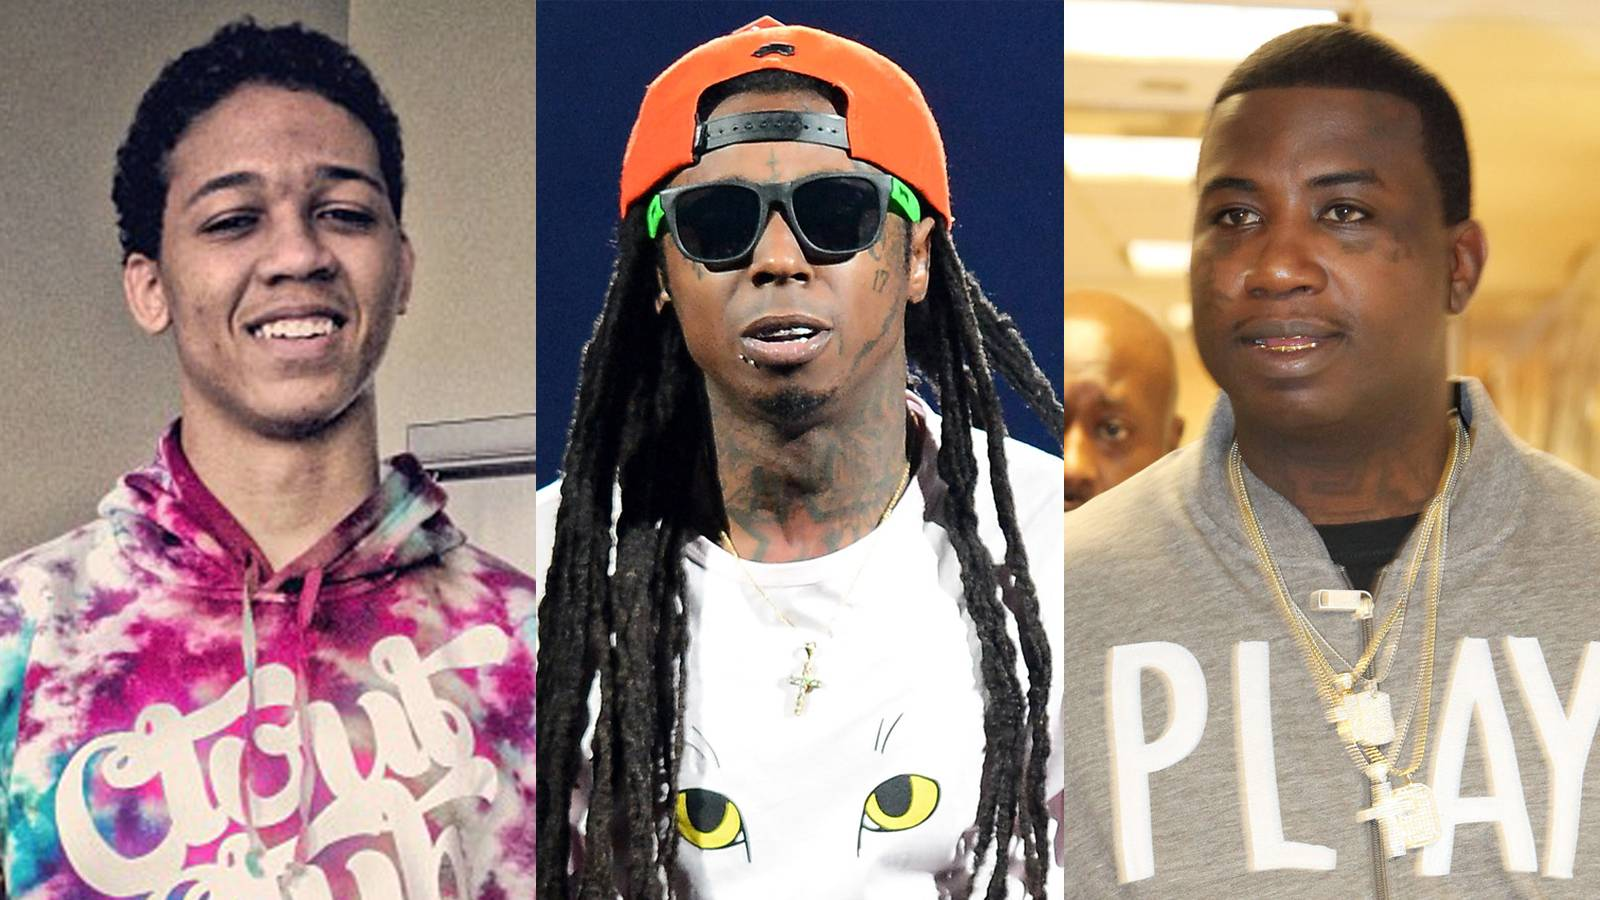 """Inspired by Lil Wayne and Gucci Mane - When Bibby was coming up in the Chi, he was listening to Southern artistsLil Wayne and Gucci Mane.""""I remember people use to always argue about who was best between the two,"""" he told XXL.(Photos: Lil Bibby via Instagram; Ethan Miller/Getty Images; Johnny Nunez/WireImage/Getty Images)"""